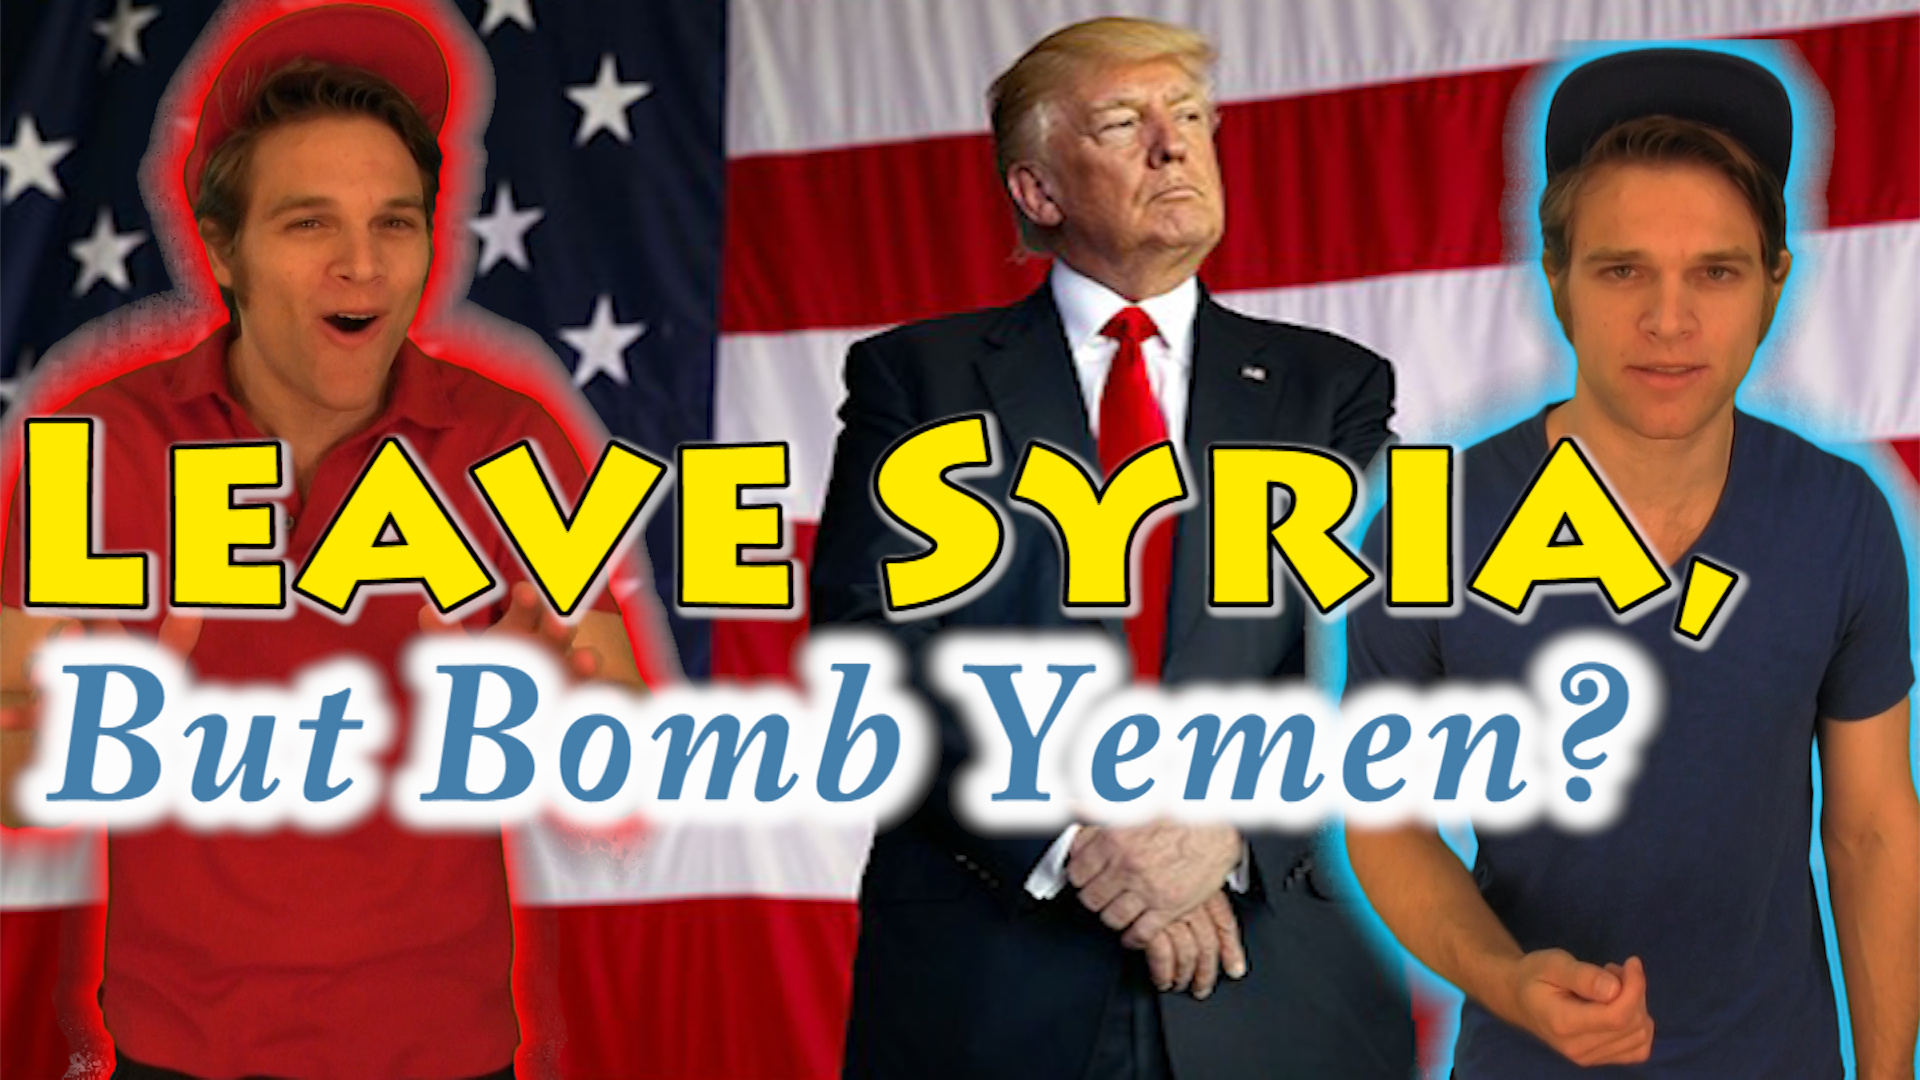 Donald Trump wants to Leave Syria but Bomb Yemen?